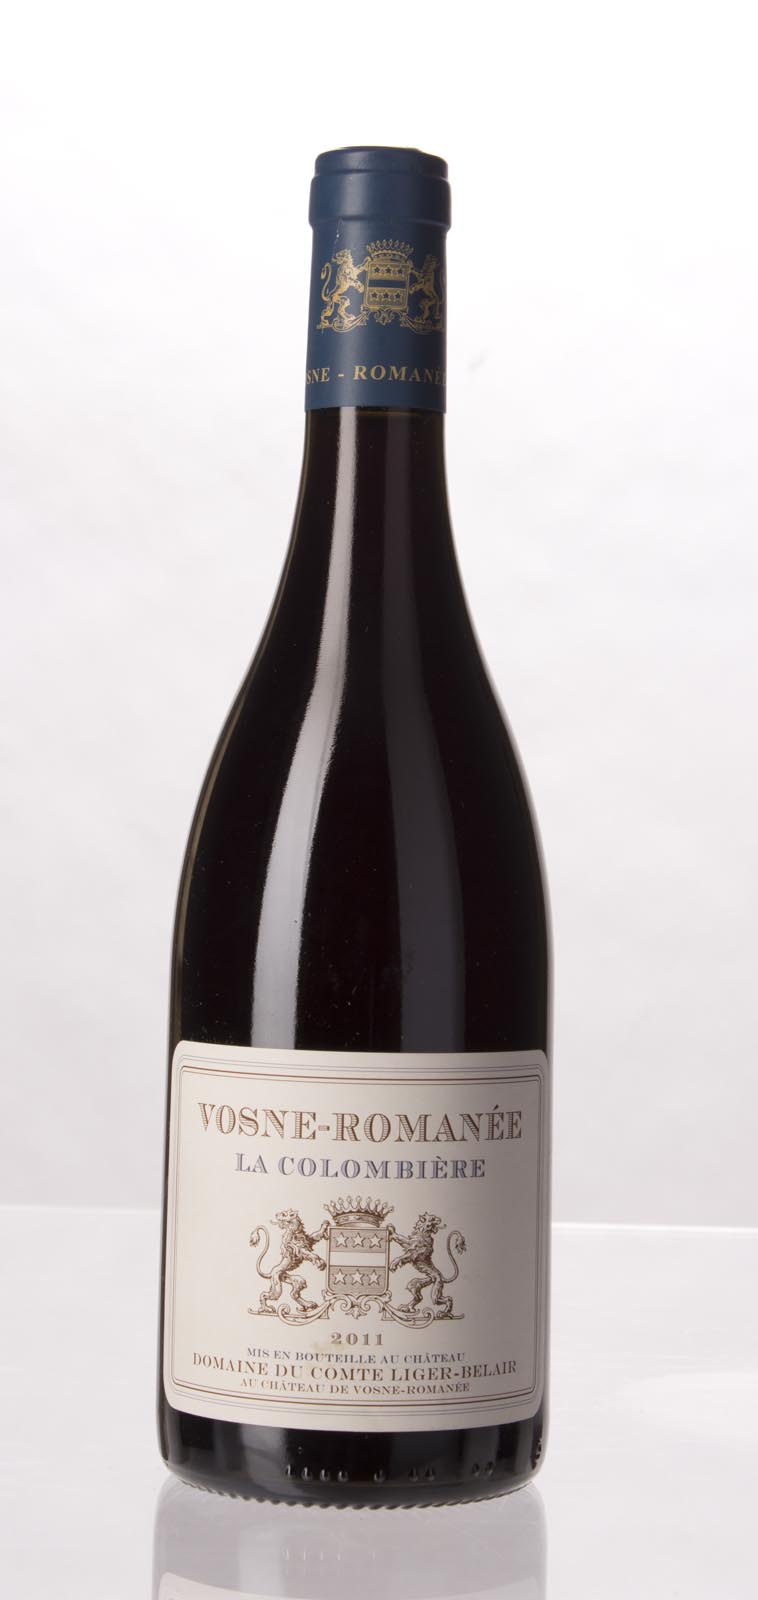 Domaine du Vicomte Liger Belair Vosne Romanee la Colombiere 2011, 750mL (AG91) from The BPW - Merchants of rare and fine wines.